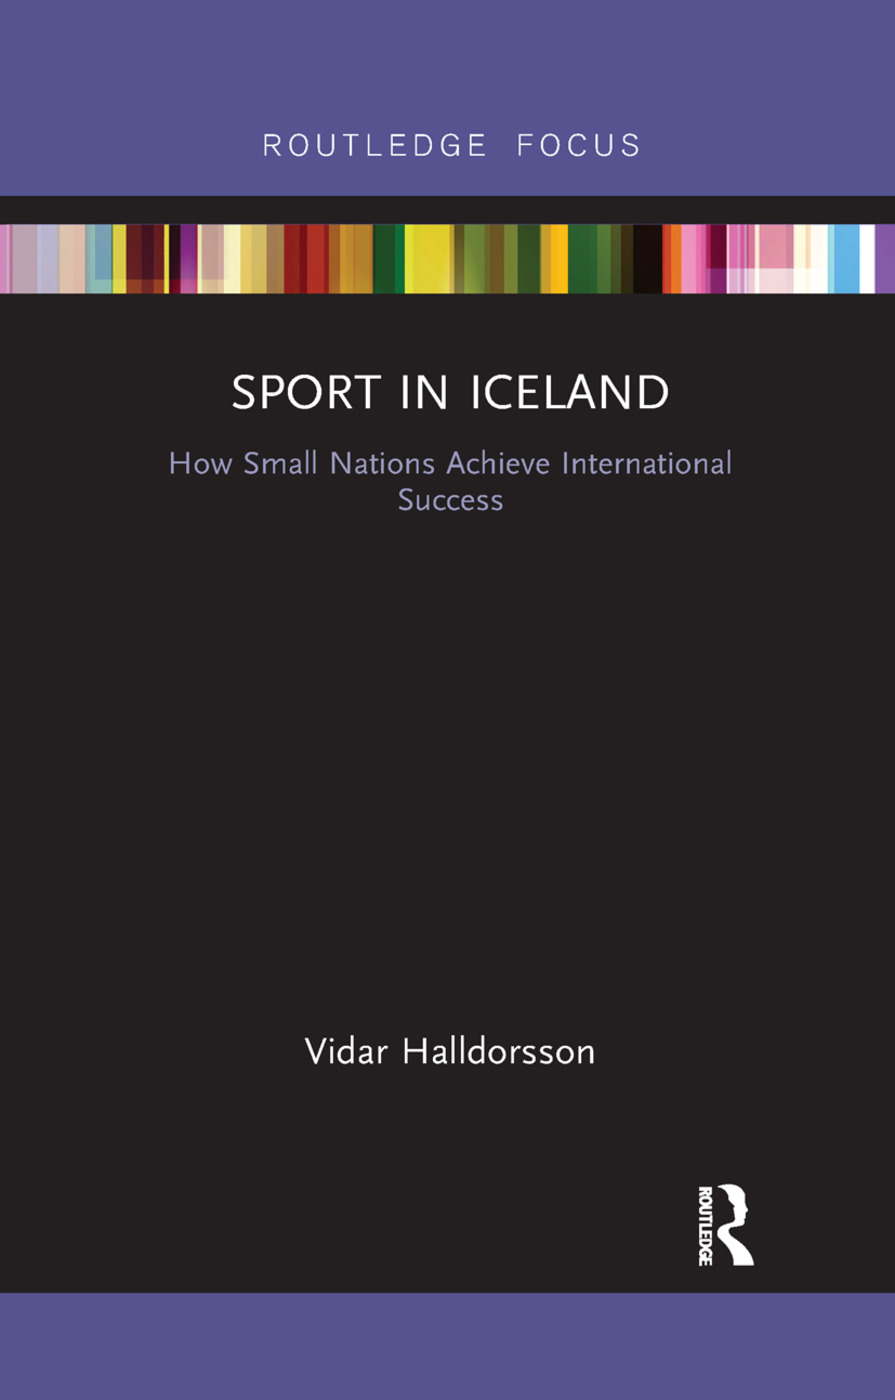 Sport in Iceland: How Small Nations Achieve International Success book cover